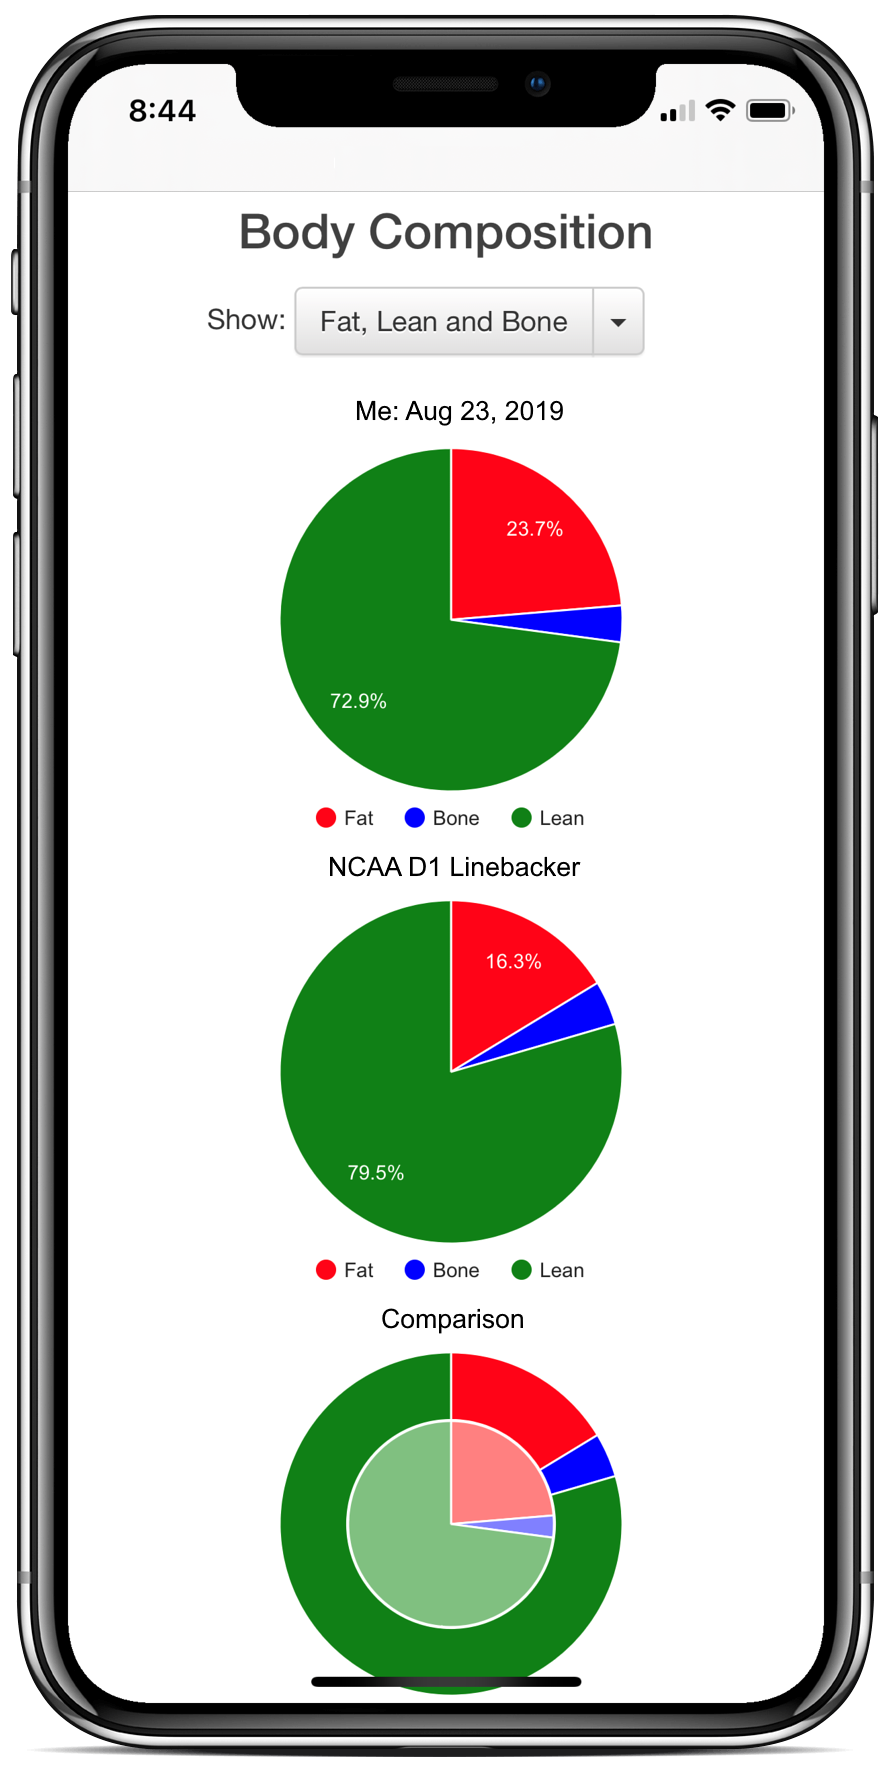 Comparision of fat and lean with NCAA Division 1 football player